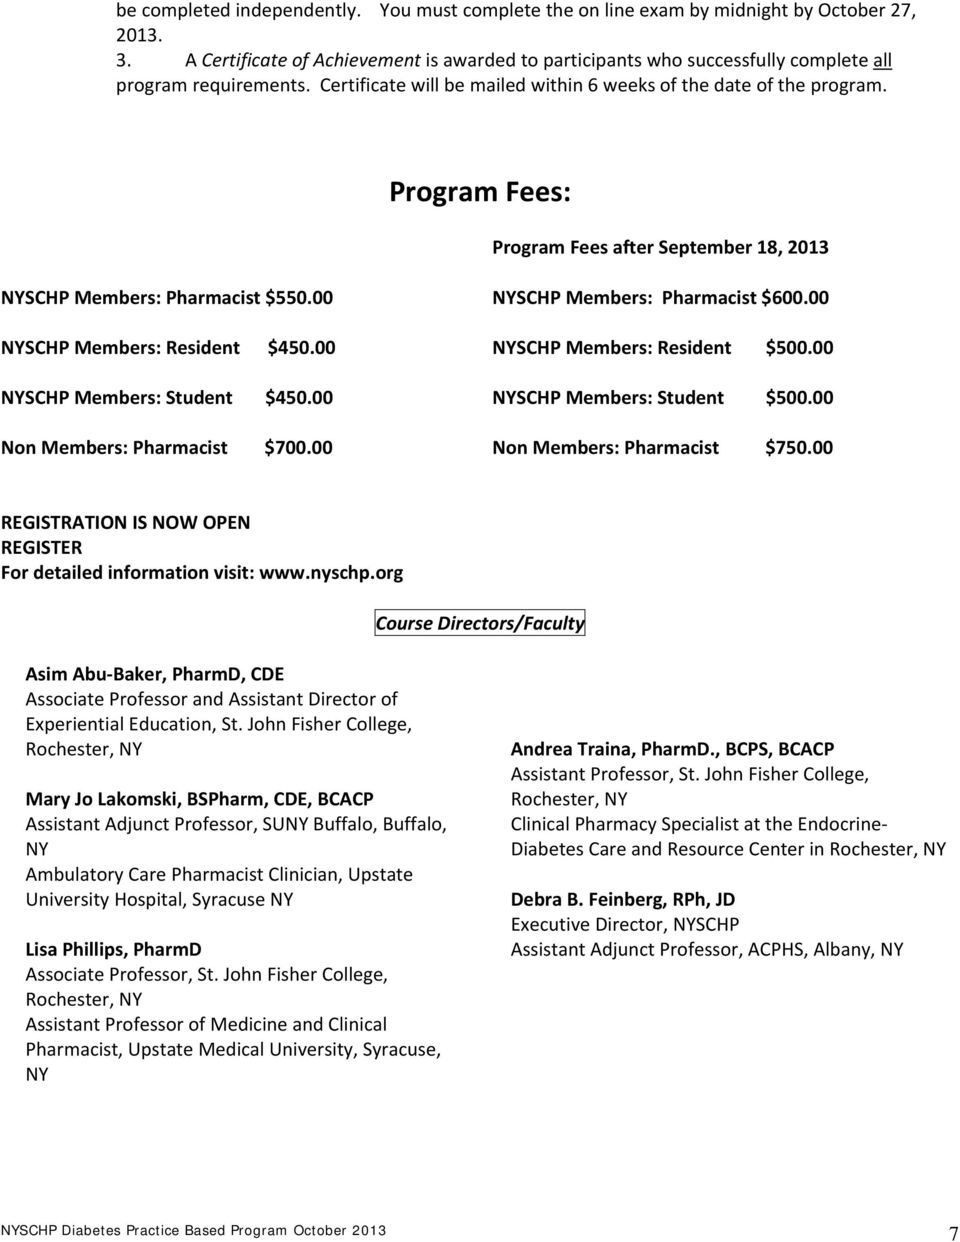 Program Fees: Program Fees after September 18, 2013 NYSCHP Members: Pharmacist $550.00 NYSCHP Members: Pharmacist $600.00 NYSCHP Members: Resident $450.00 NYSCHP Members: Resident $500.